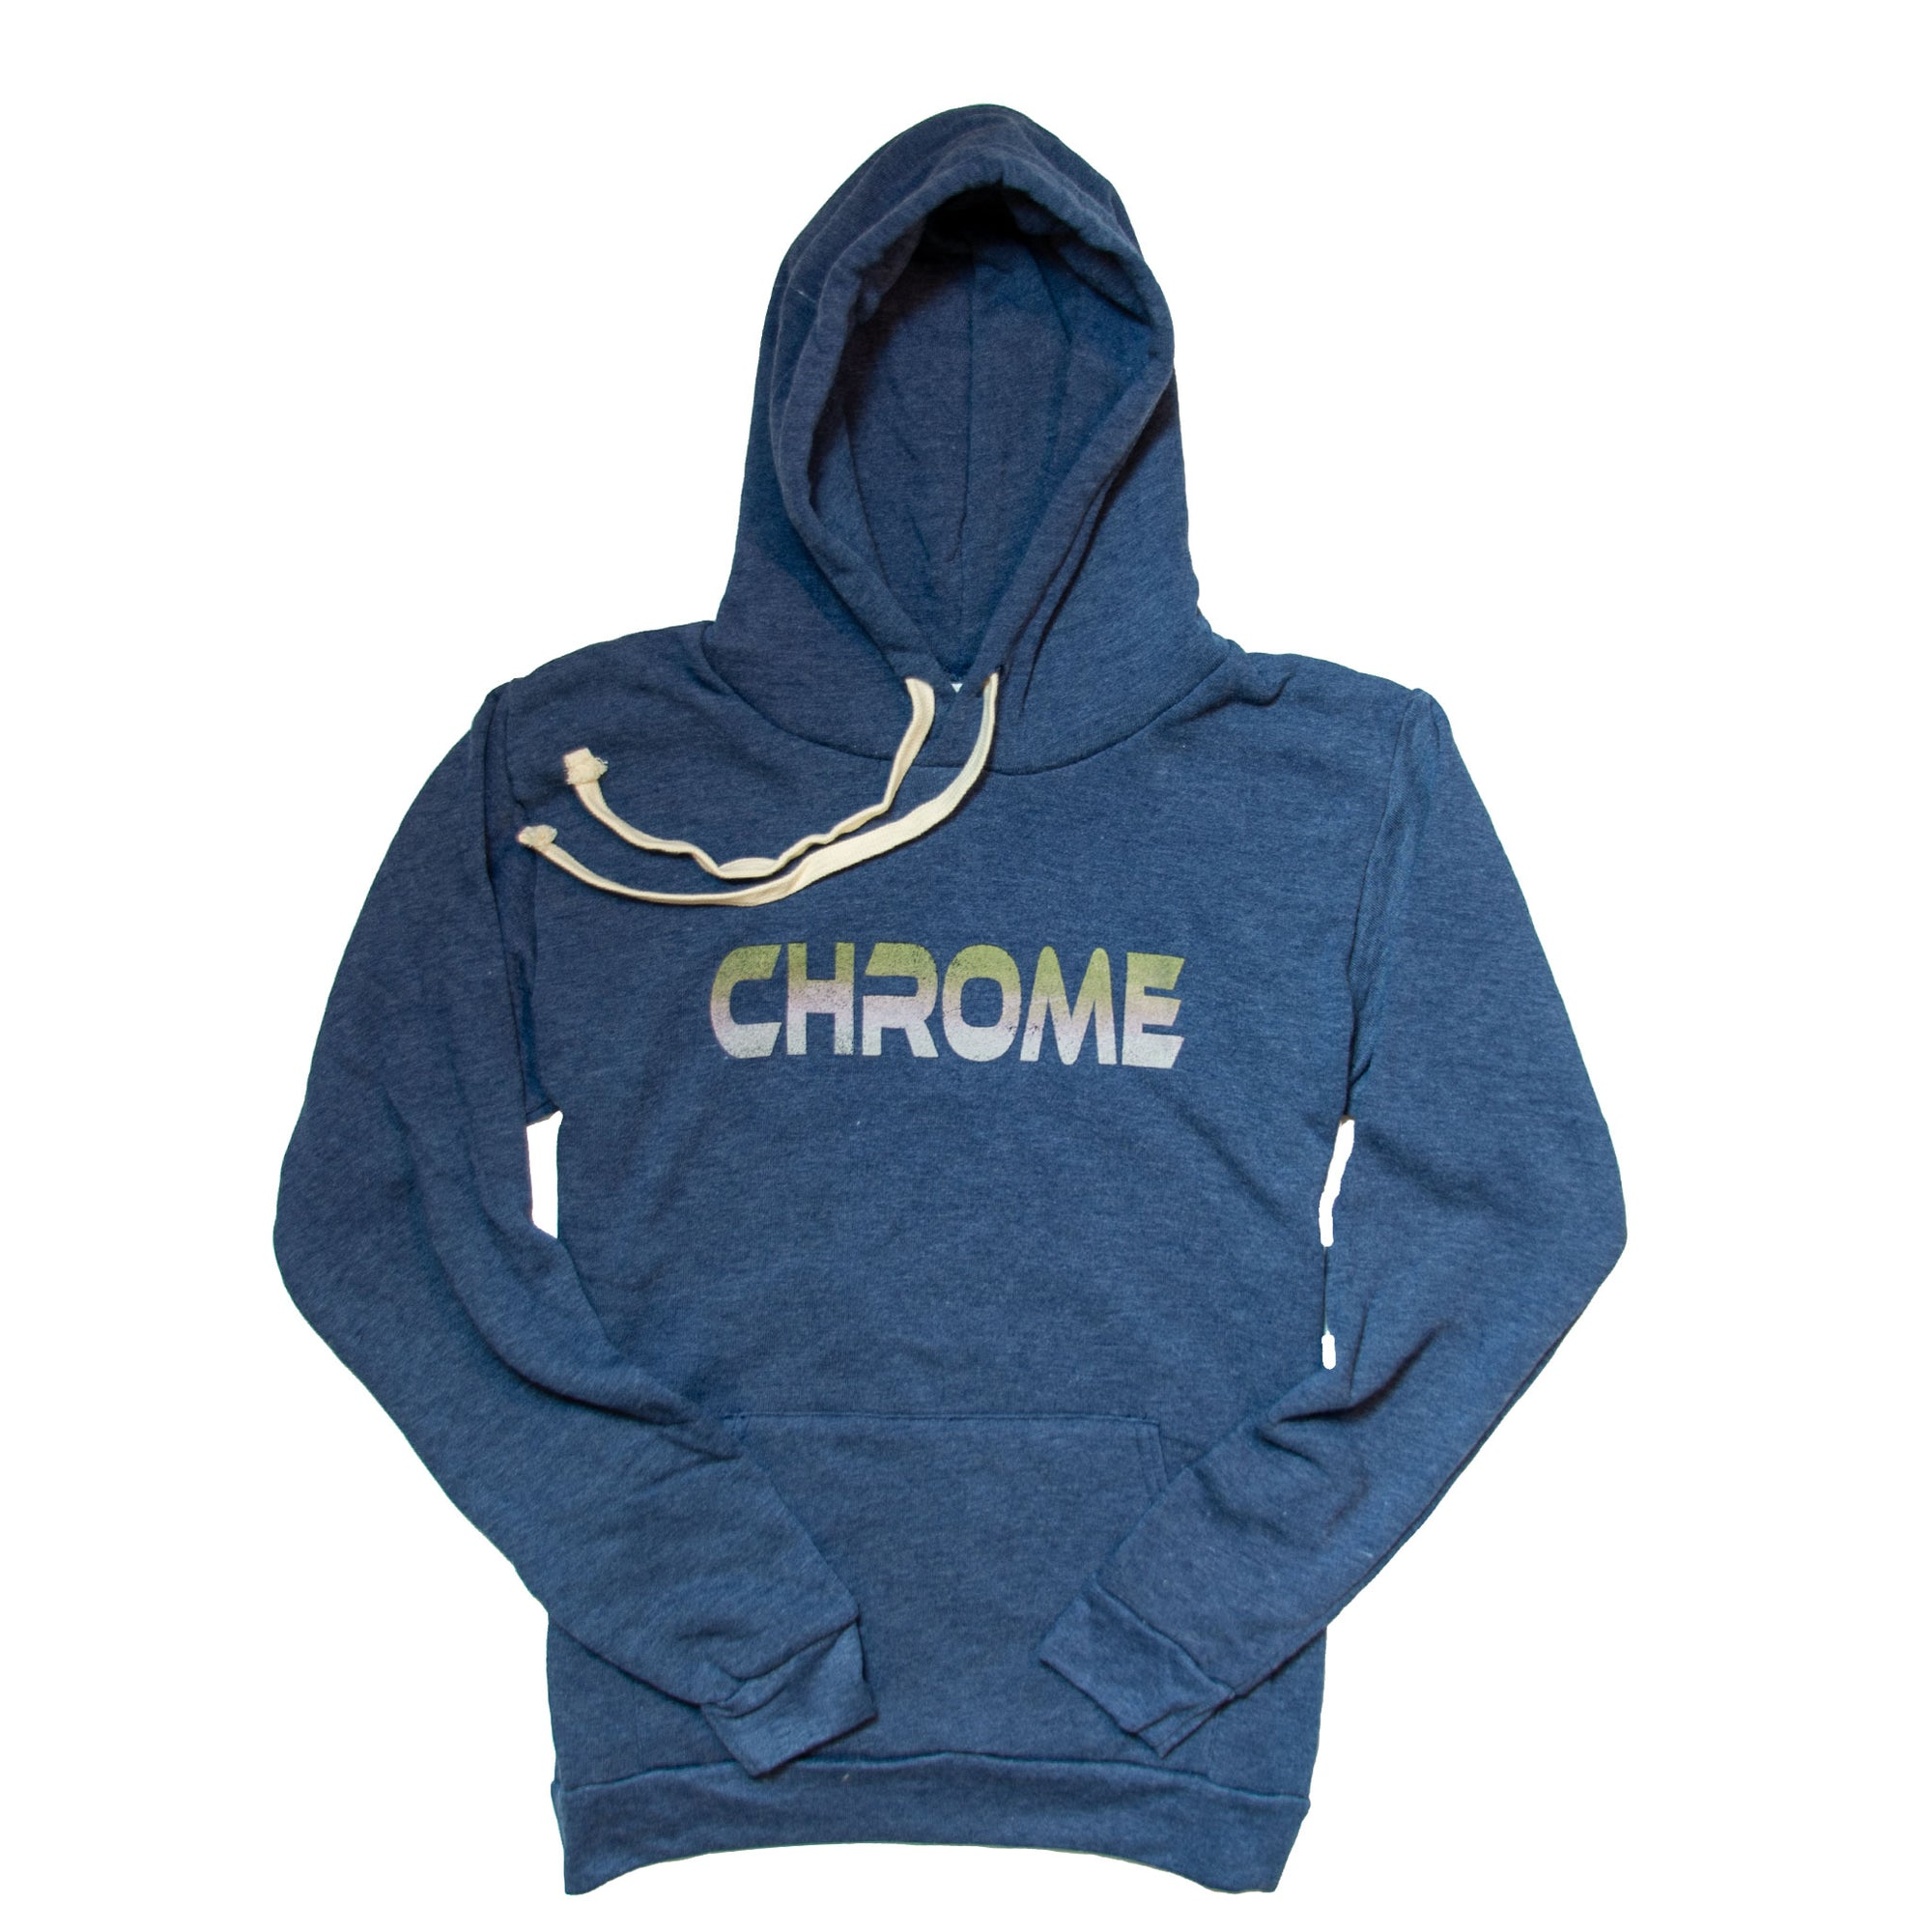 CHROME Triblend Pullover Hoodie